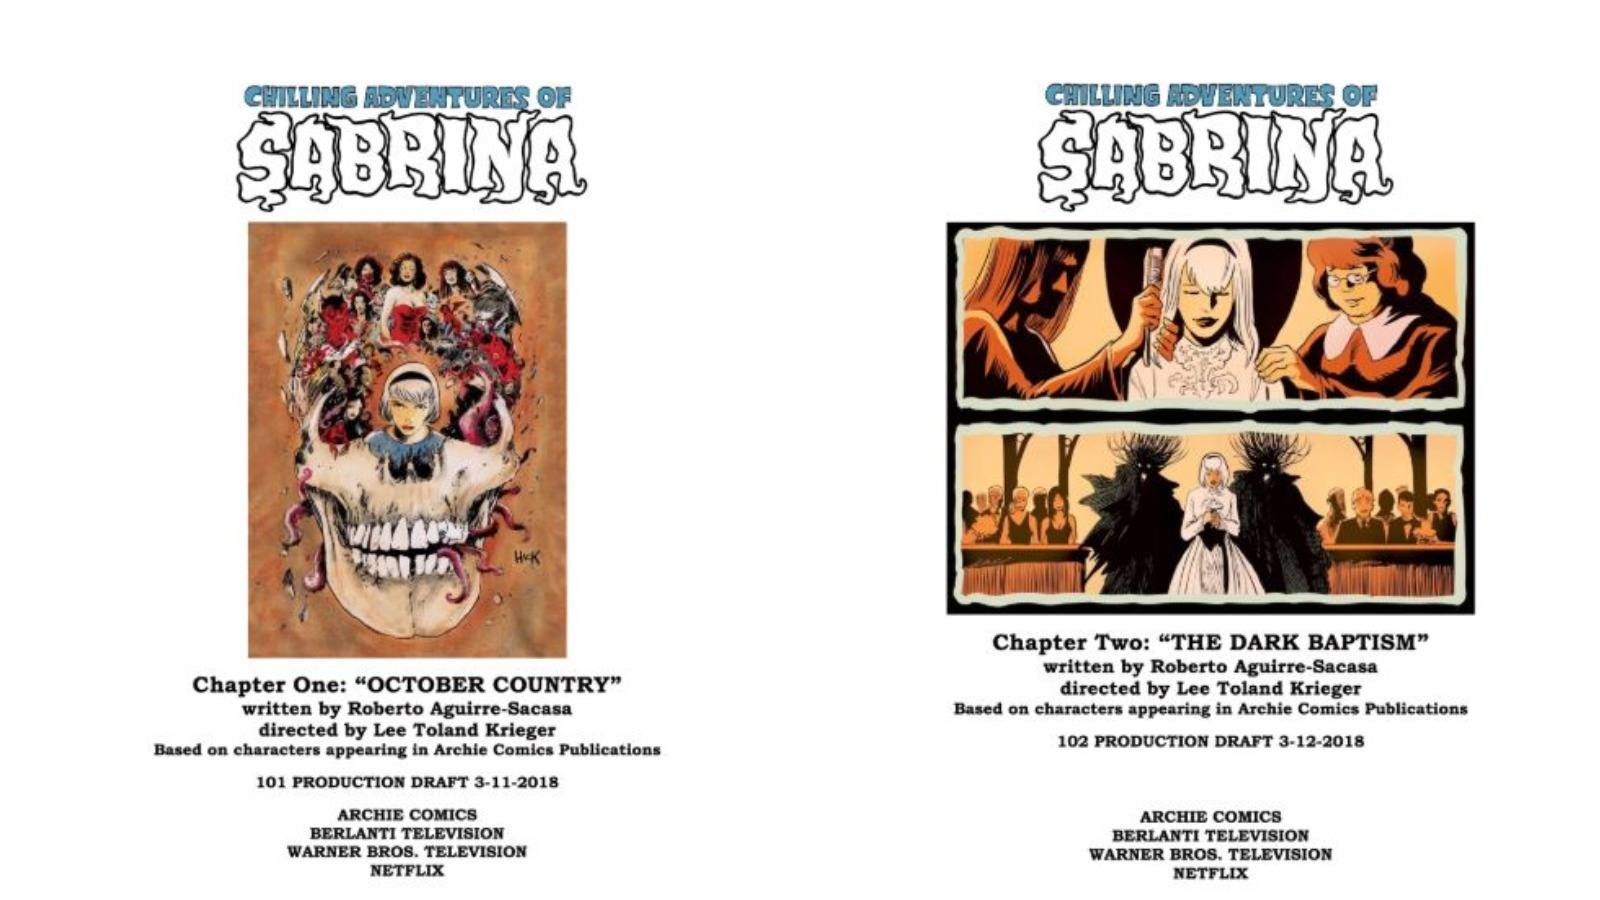 Sabrina Season 1, E01 'October Country'/E02 'The Dark